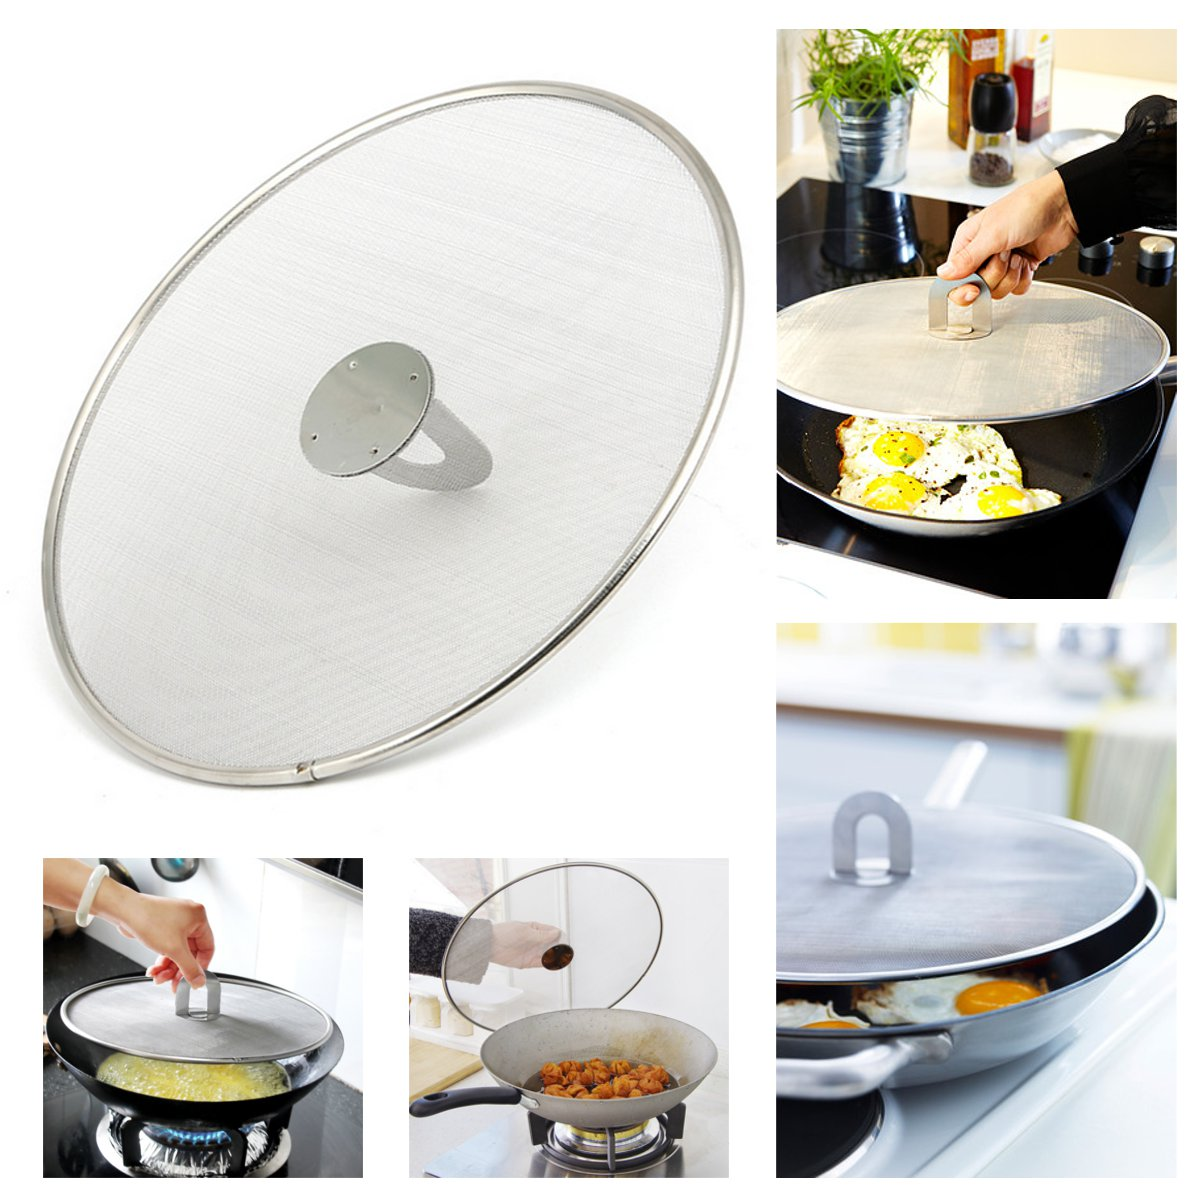 Practical Kitchen Frying Pan Splatter Screen Stainless Steel Oil Proofing Lid